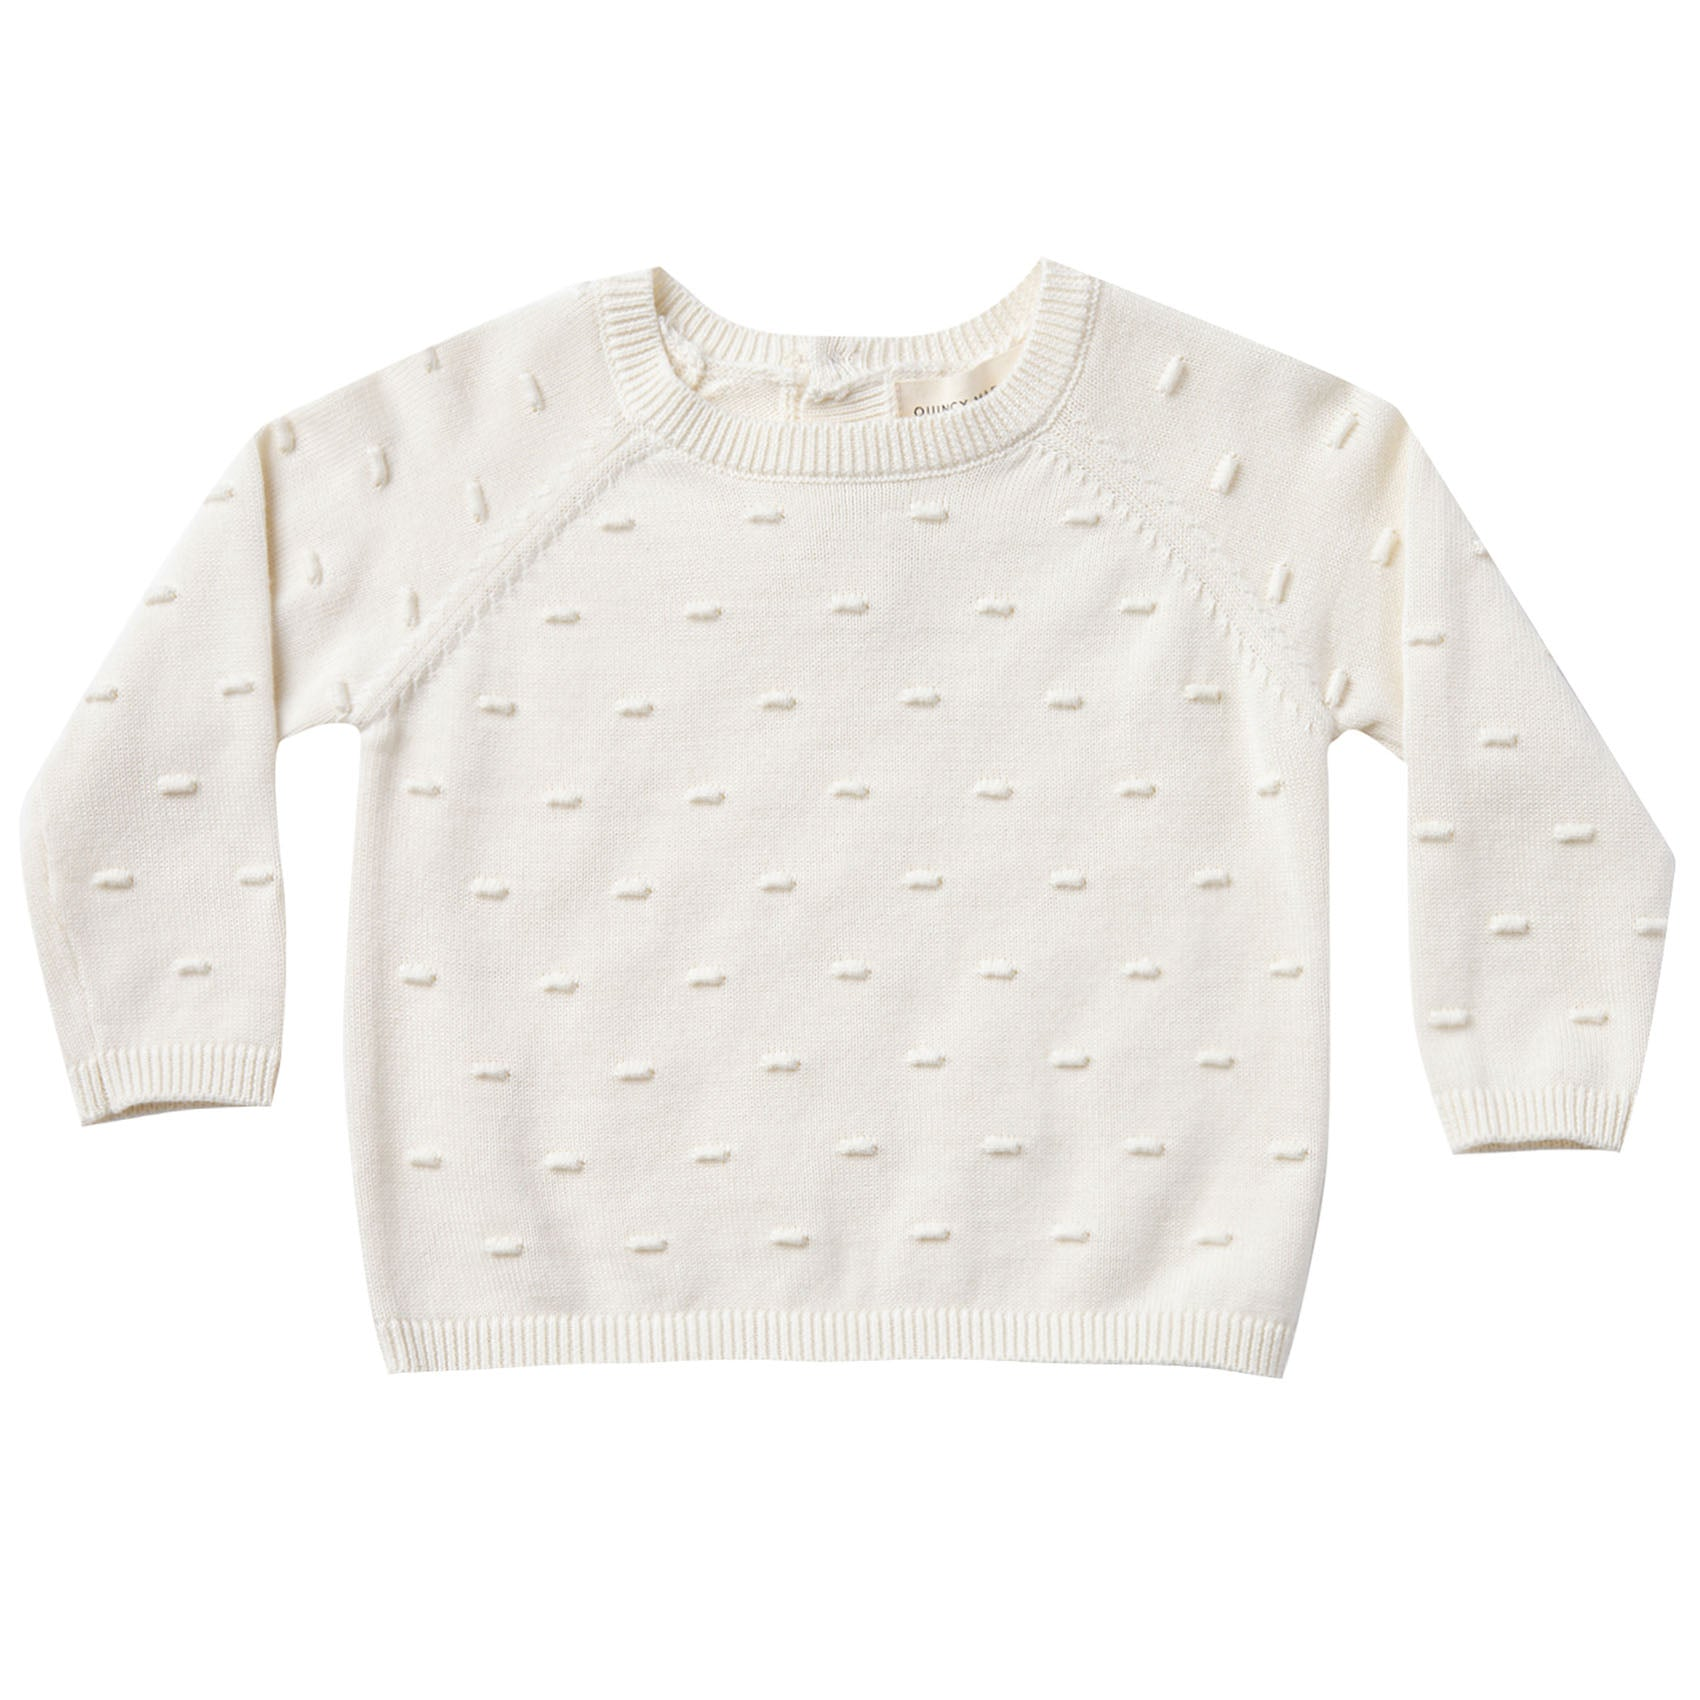 Quincy Mae Organic Bailey Knit Sweater Ivory